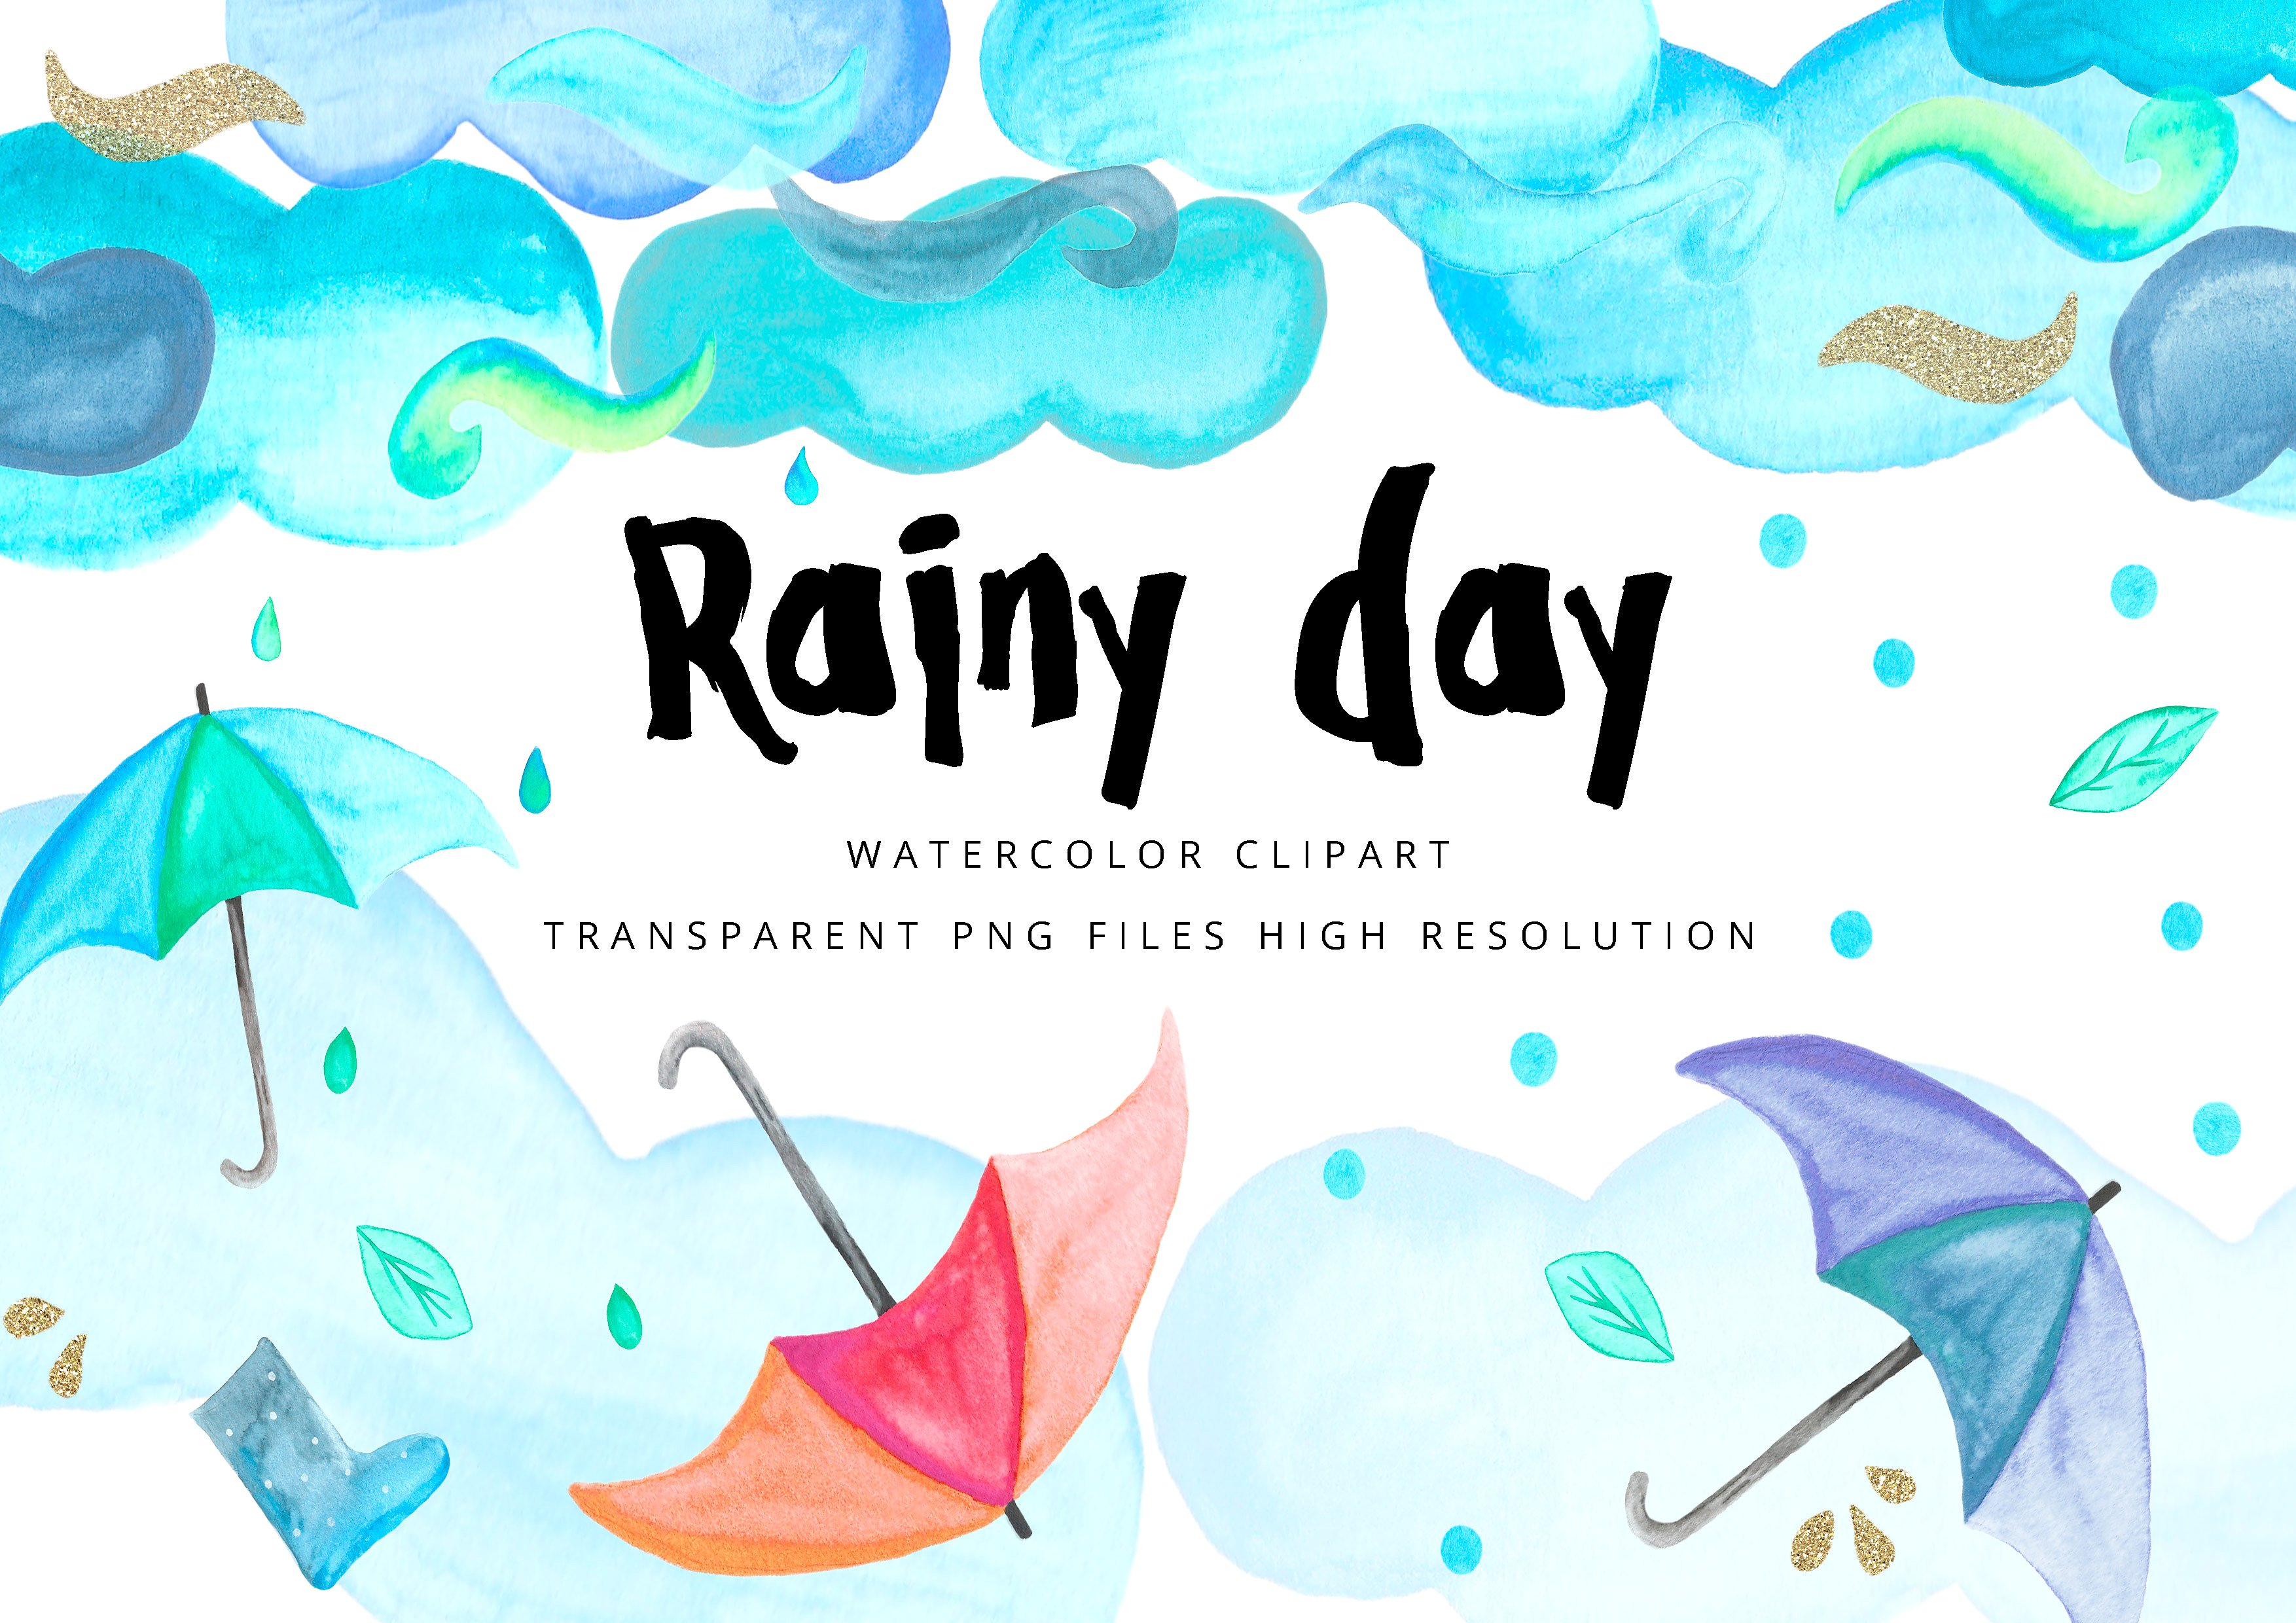 Clipart rain. Rainy day watercolor illustrations